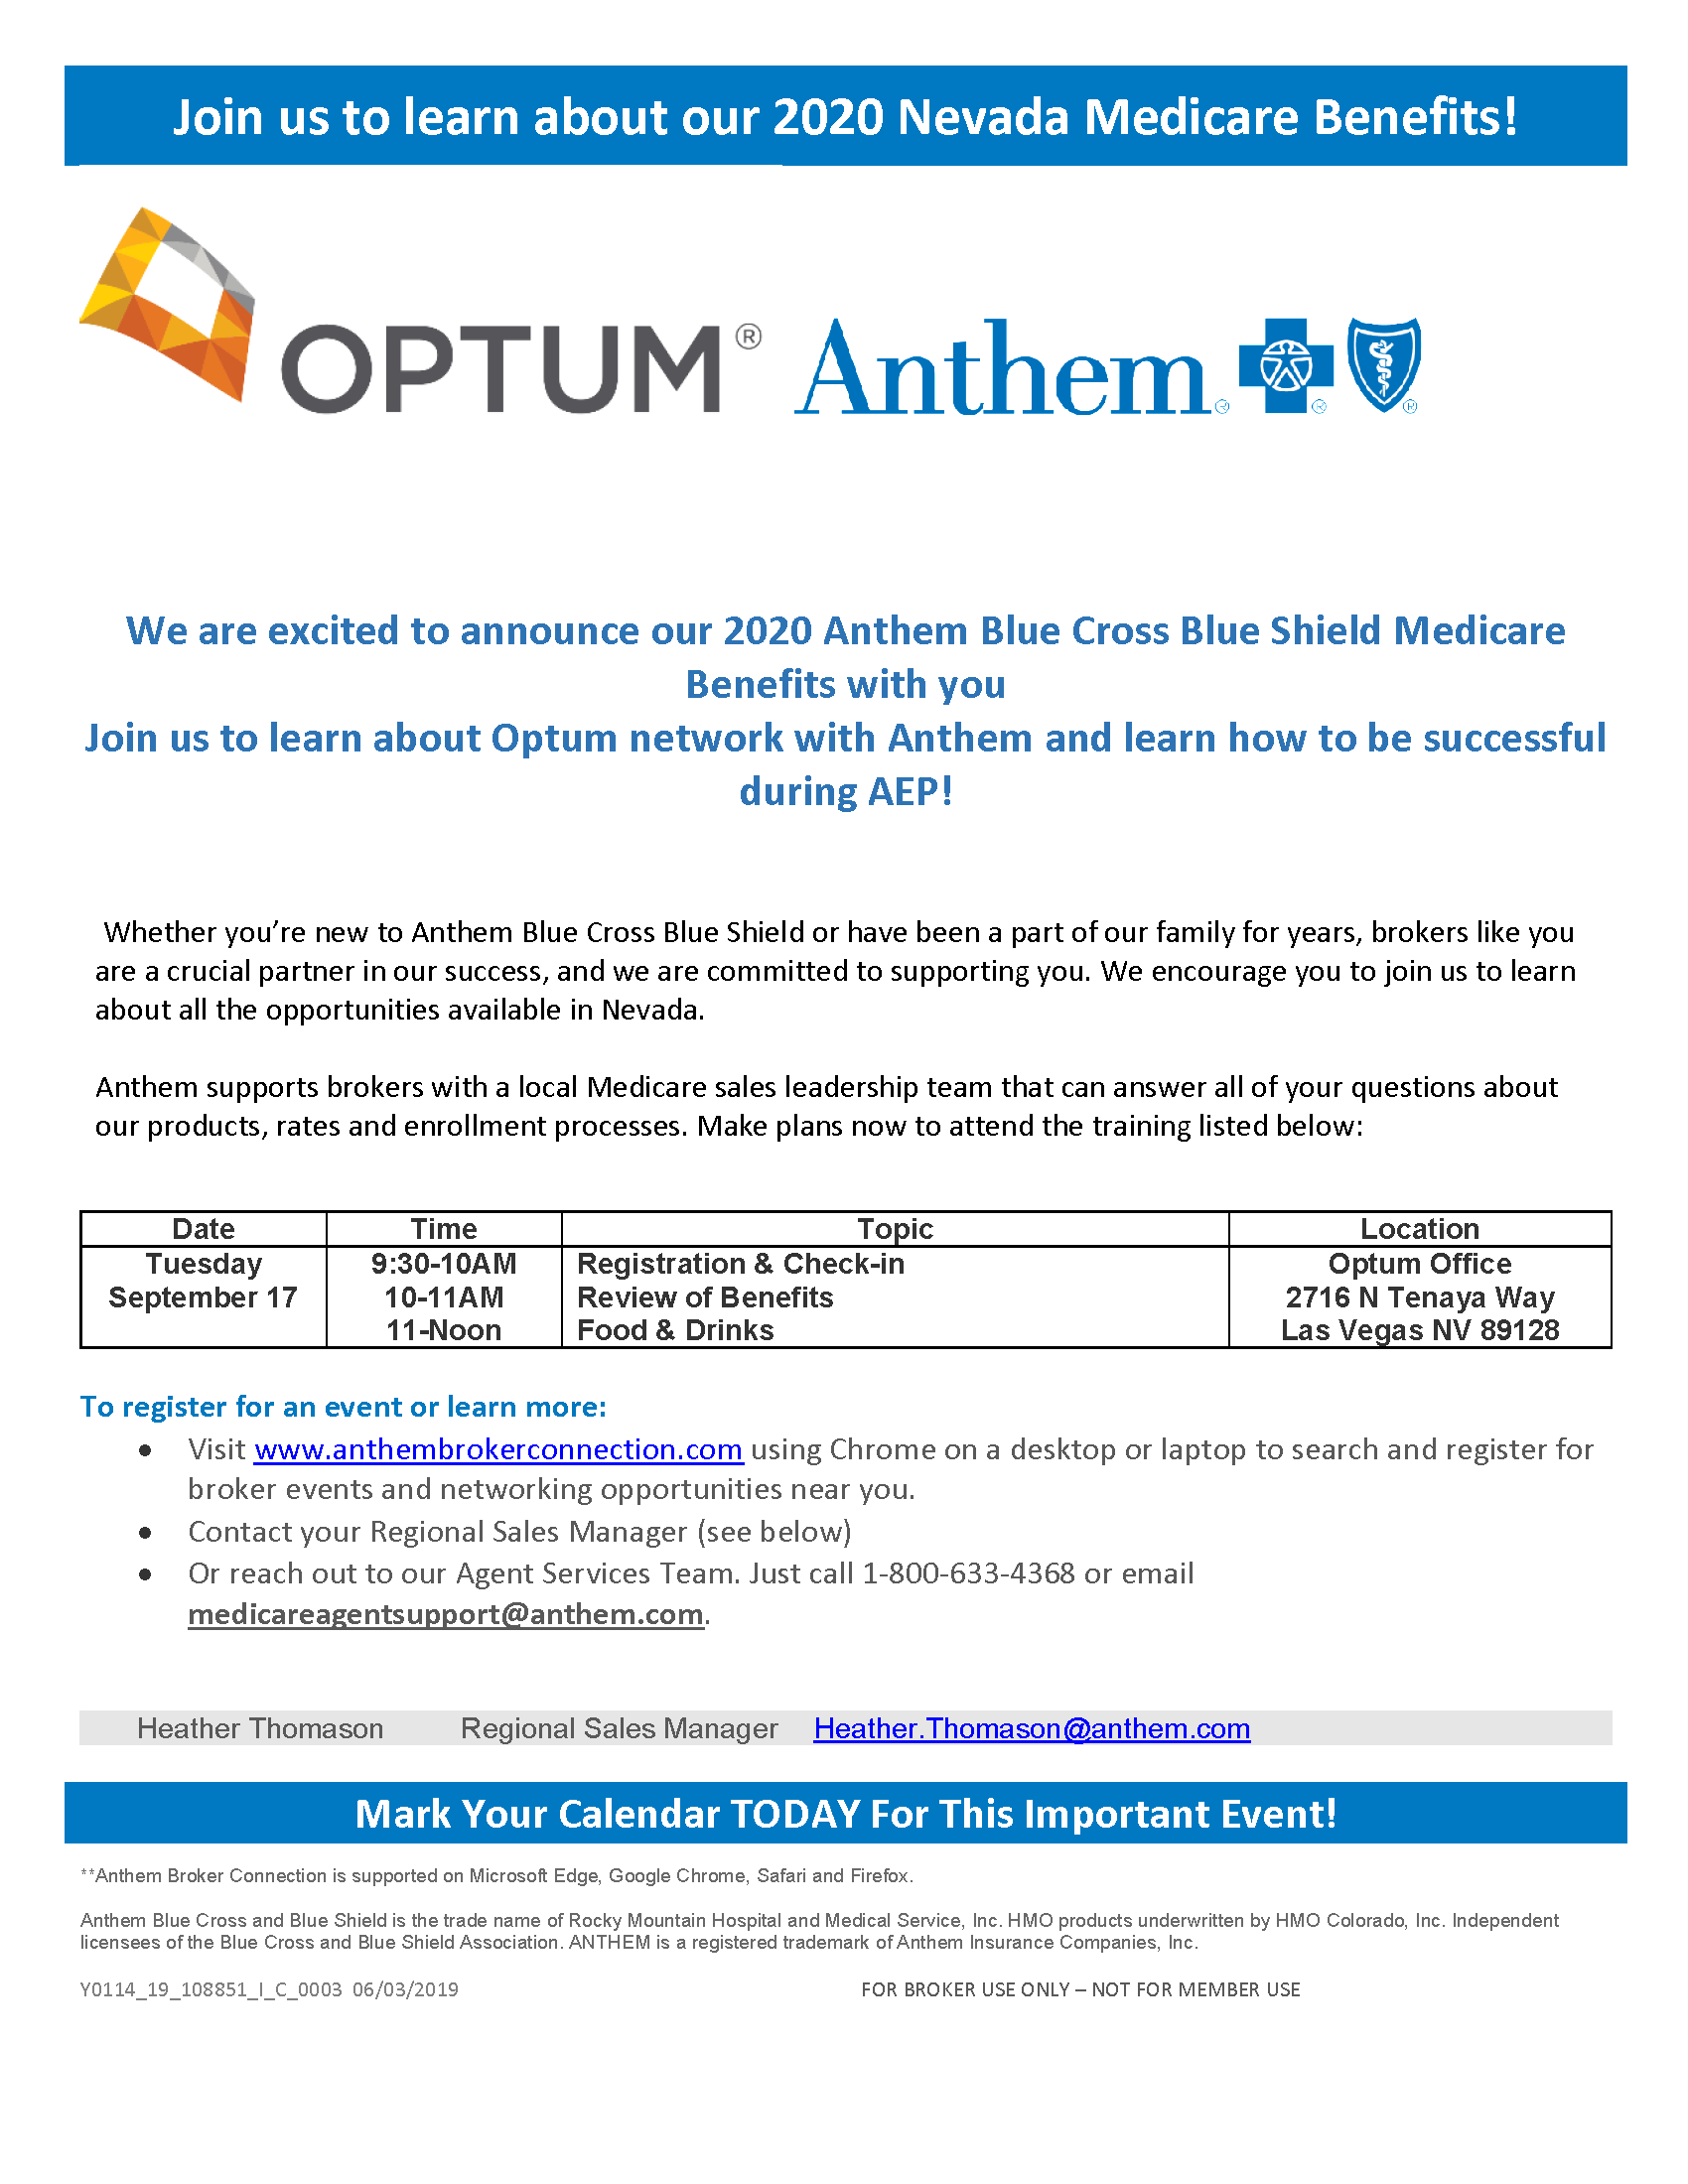 Medicare Product Training Meeting Invitation BCBS Optum 9-17-19.png